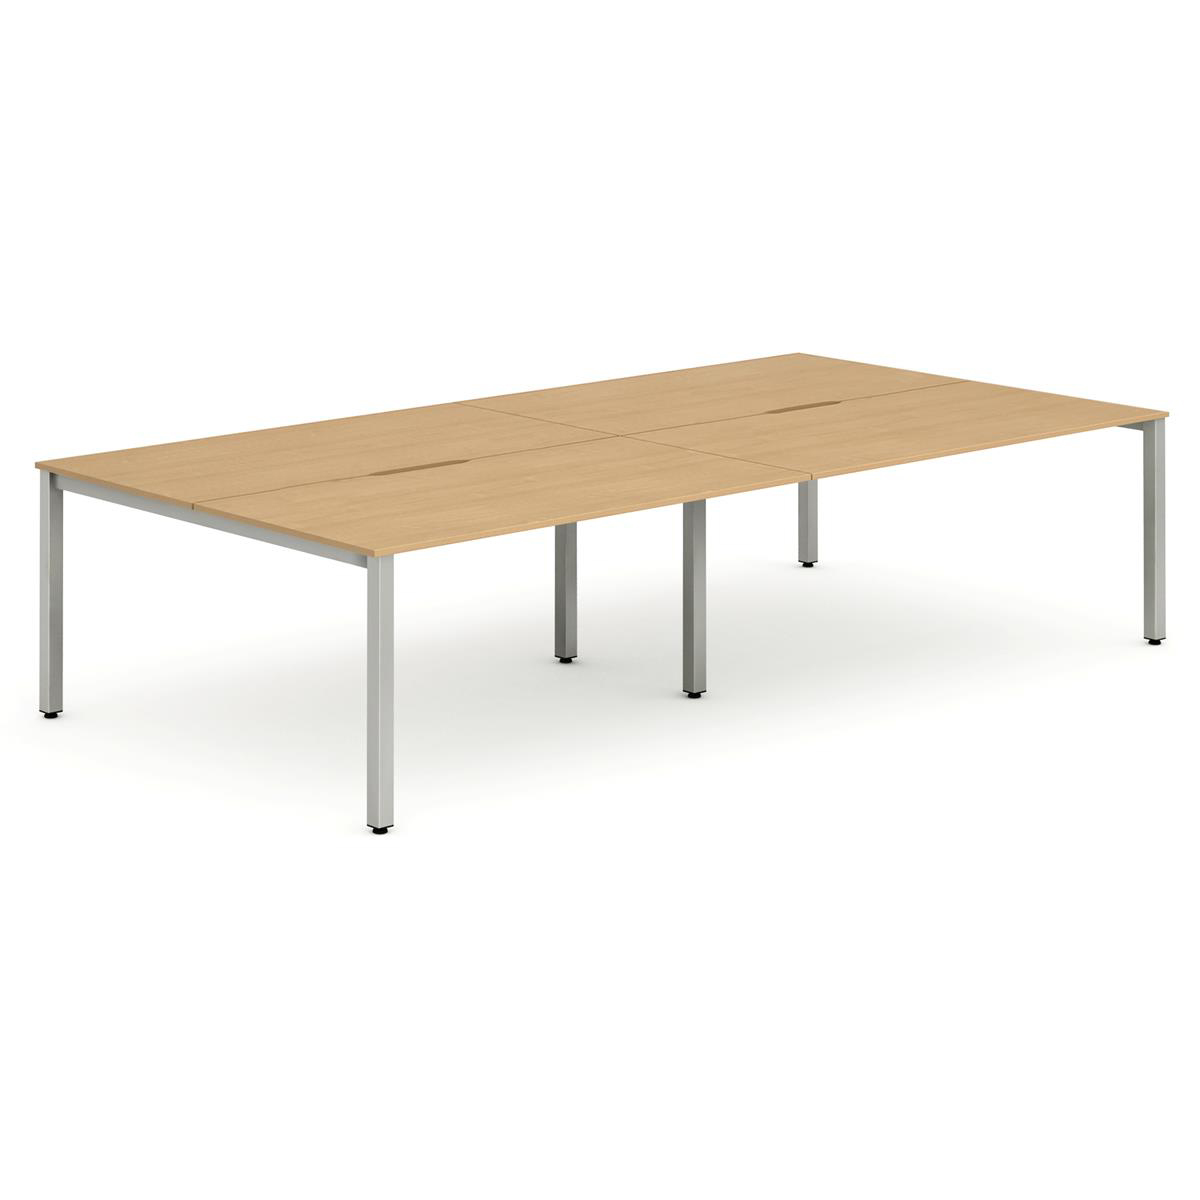 Trexus Bench Desk 4 Person Back to Back Configuration Silver Leg 2400x1600mm Beech Ref BE187